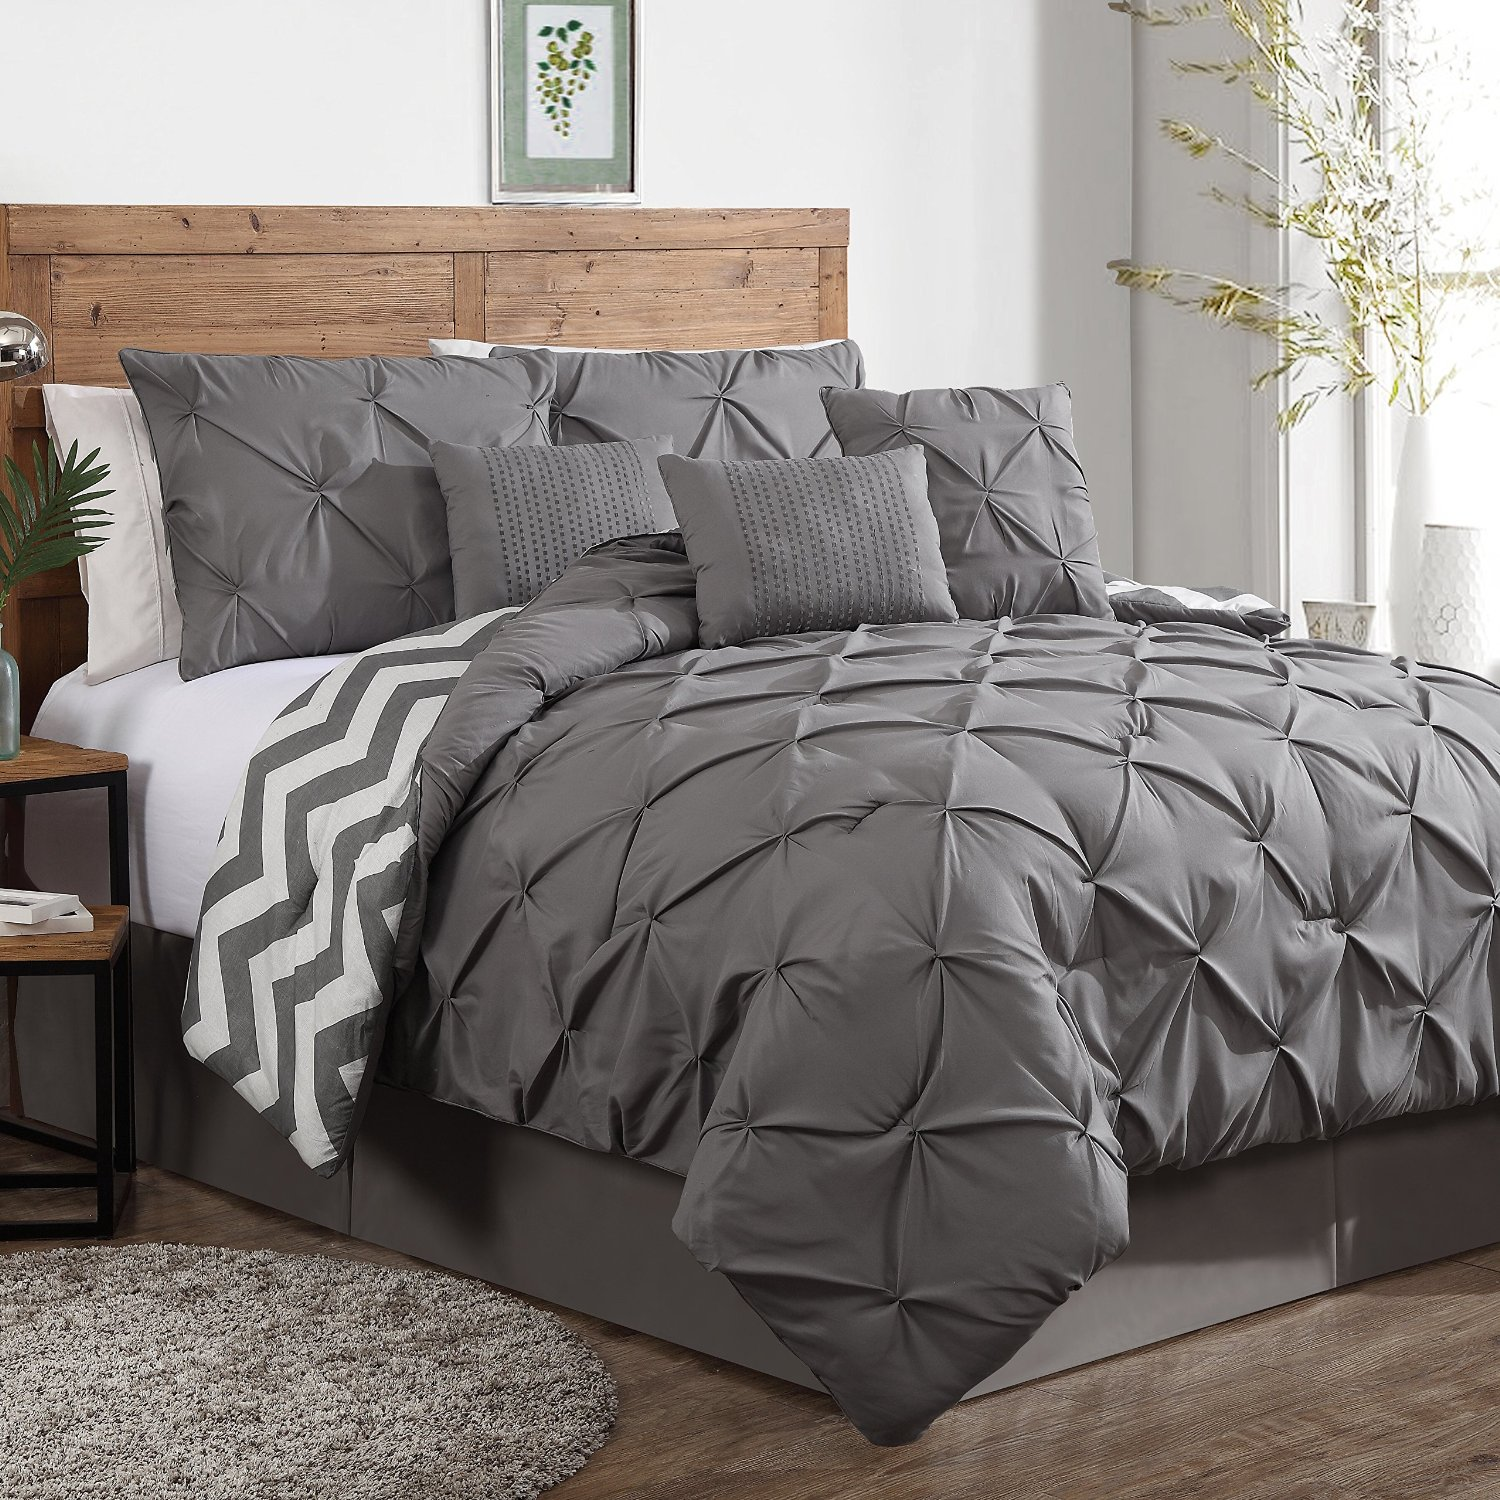 Beautiful Full Comforter Sets Bed Queen Size And King Bedsize Also Pillows And Cushion Combined With Headboards And Curtains